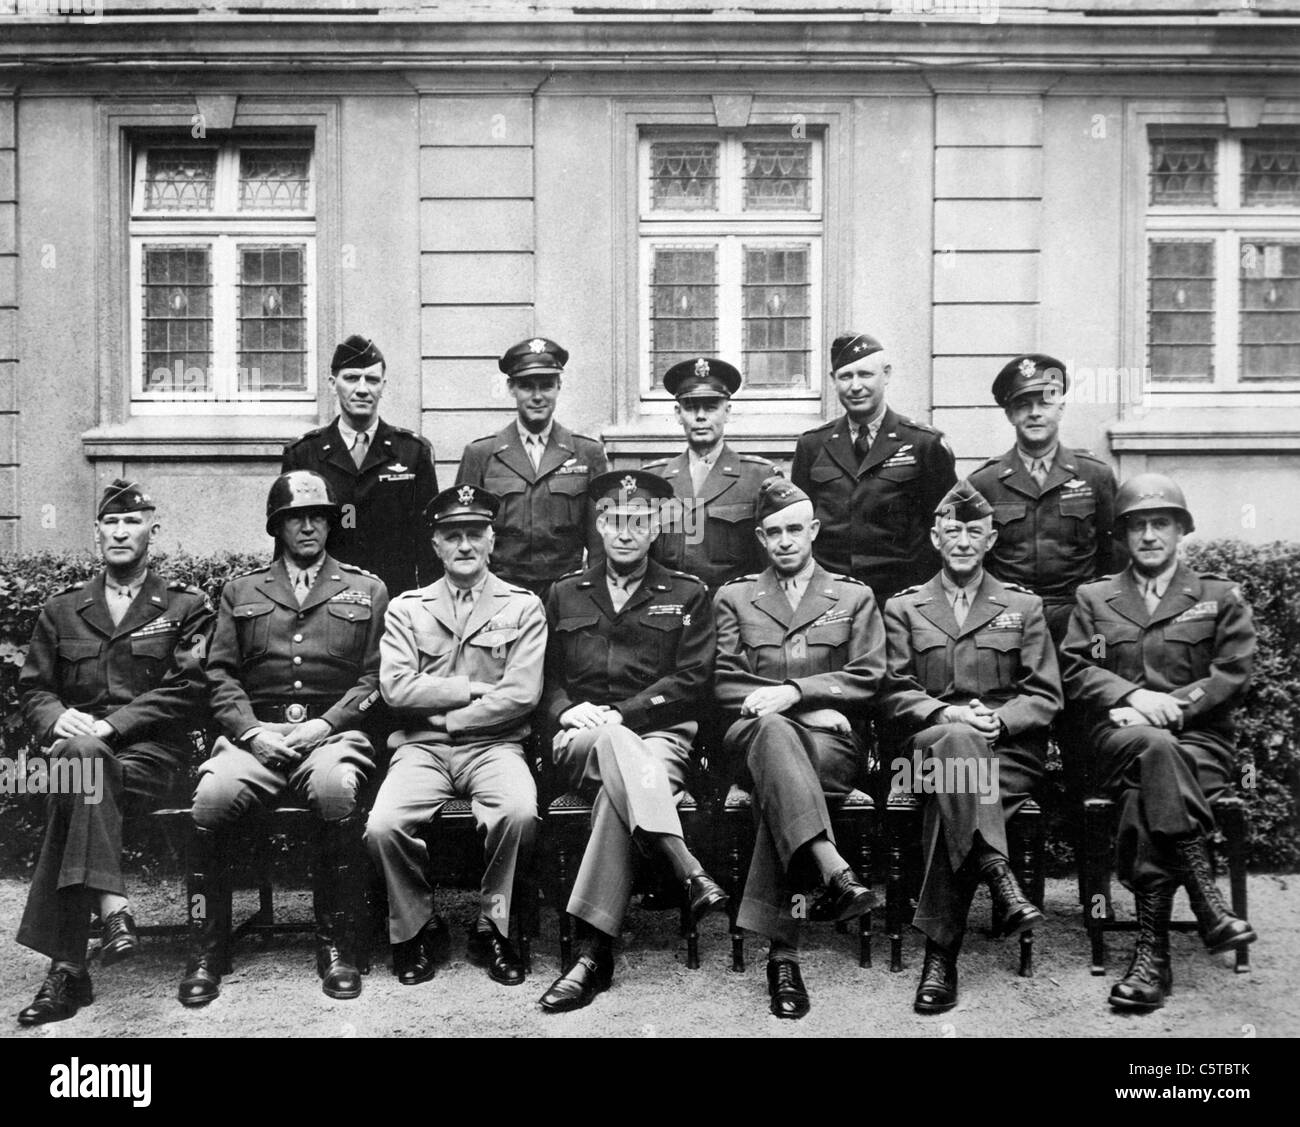 GENERAL DWIGHT D EISENHOWER seated centre in 1945 with senior American army officers - see Description below for - Stock Image